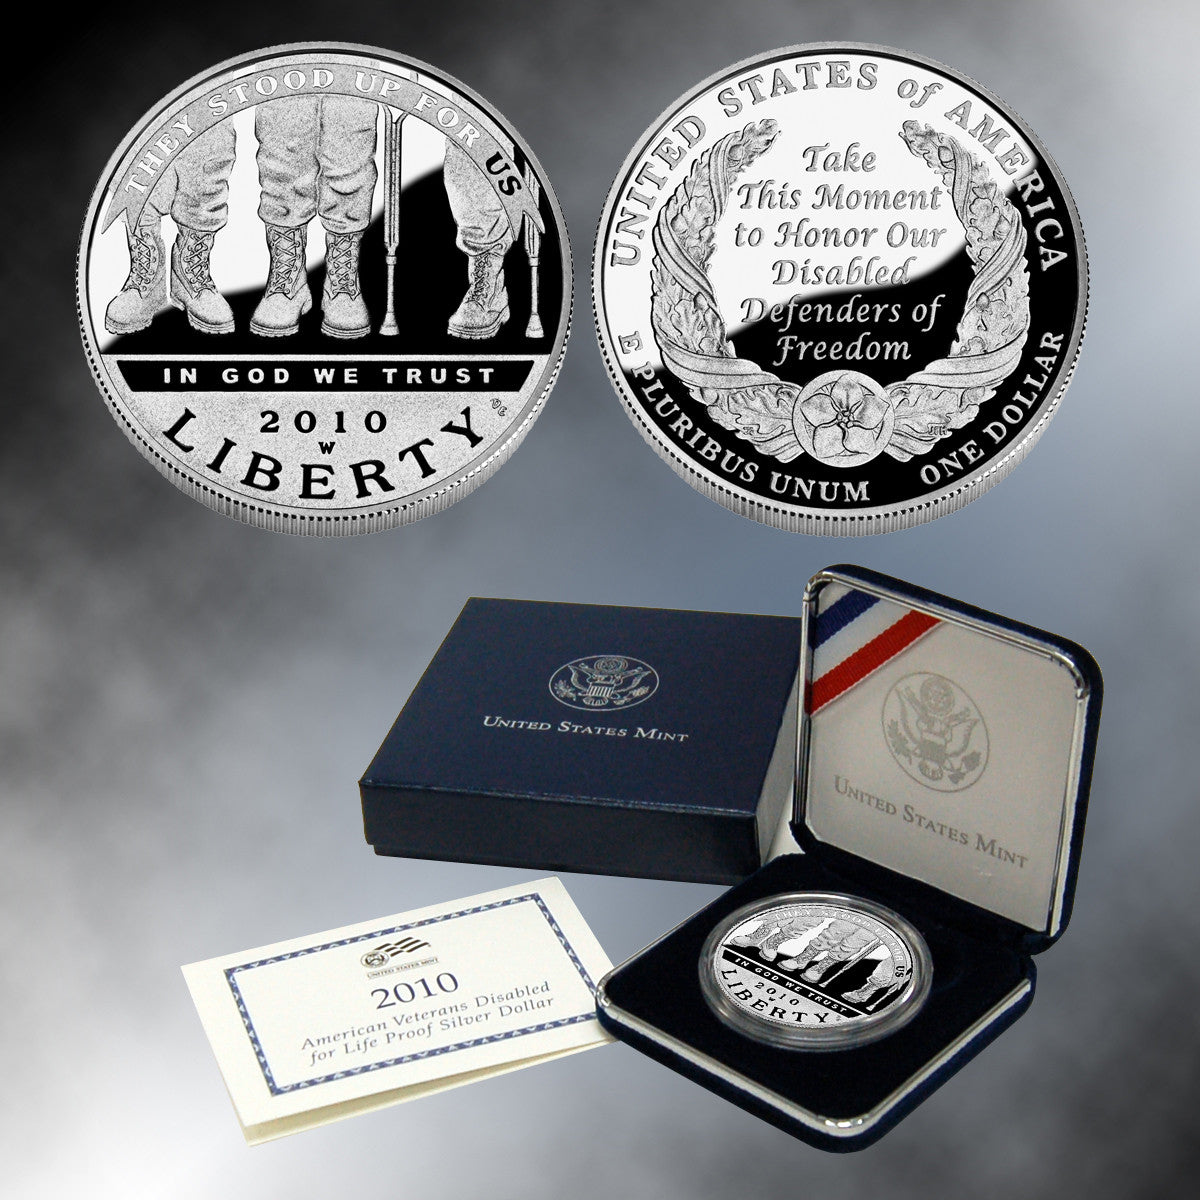 2010 American Veterans Disabled for Life Silver Dollar  - Proof